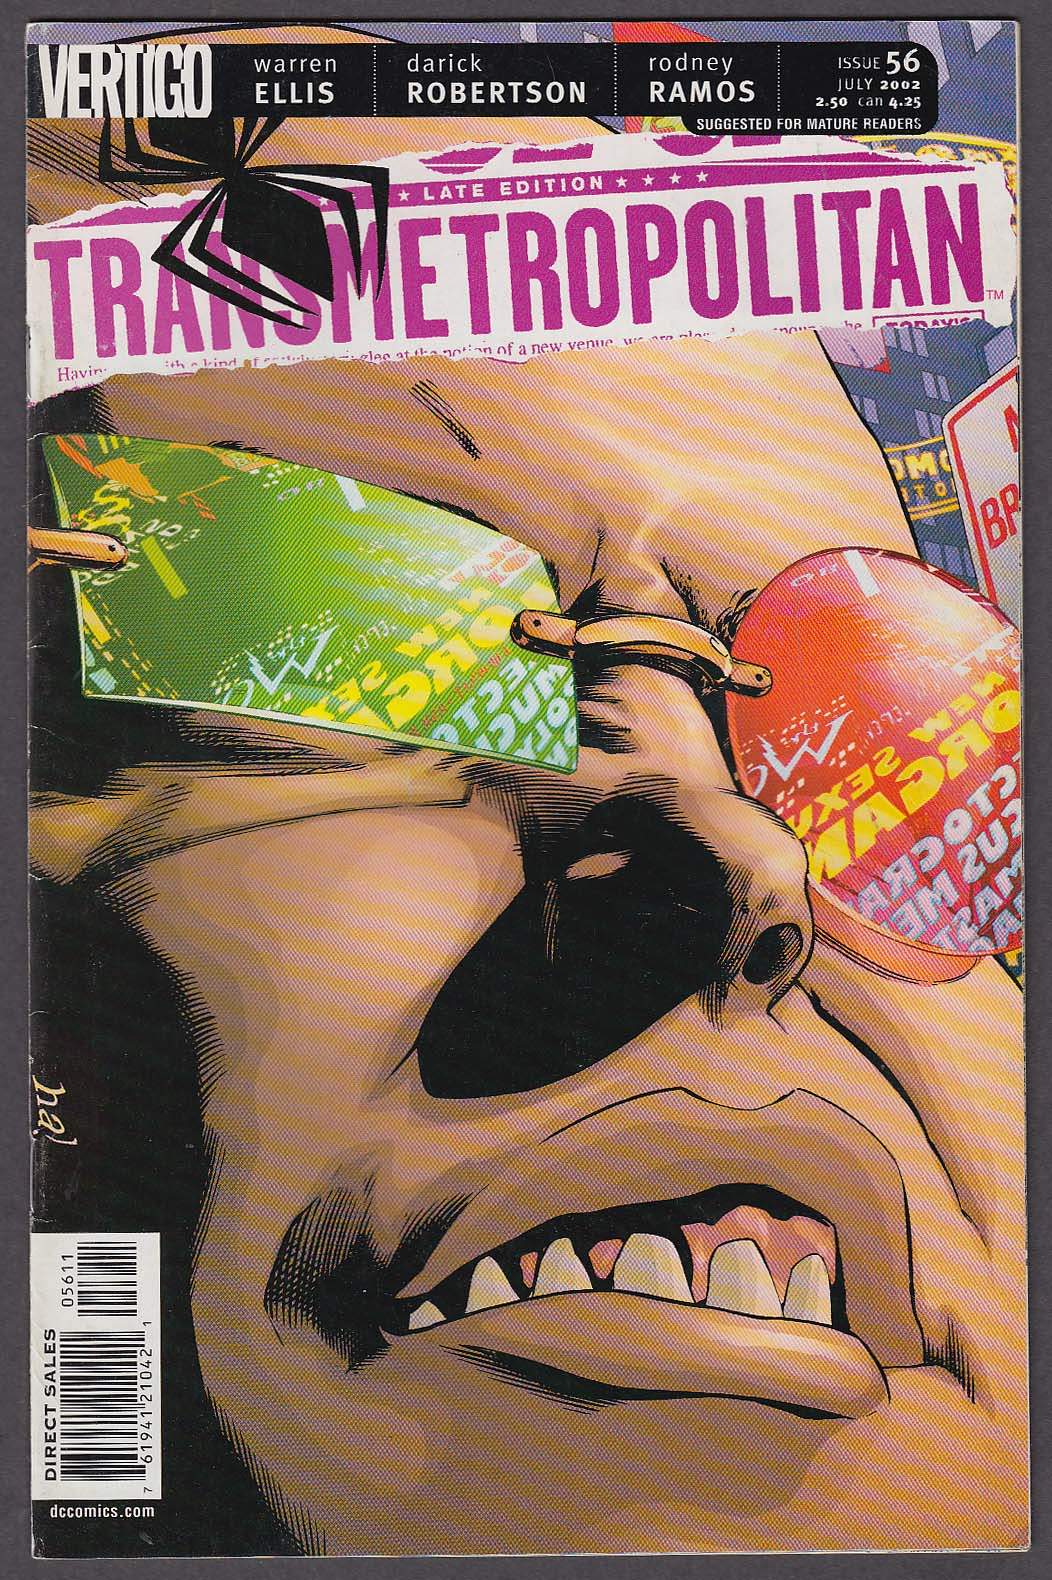 Image for TRANSMETROPOLITAN #56 Vertigo comic book 7 2002